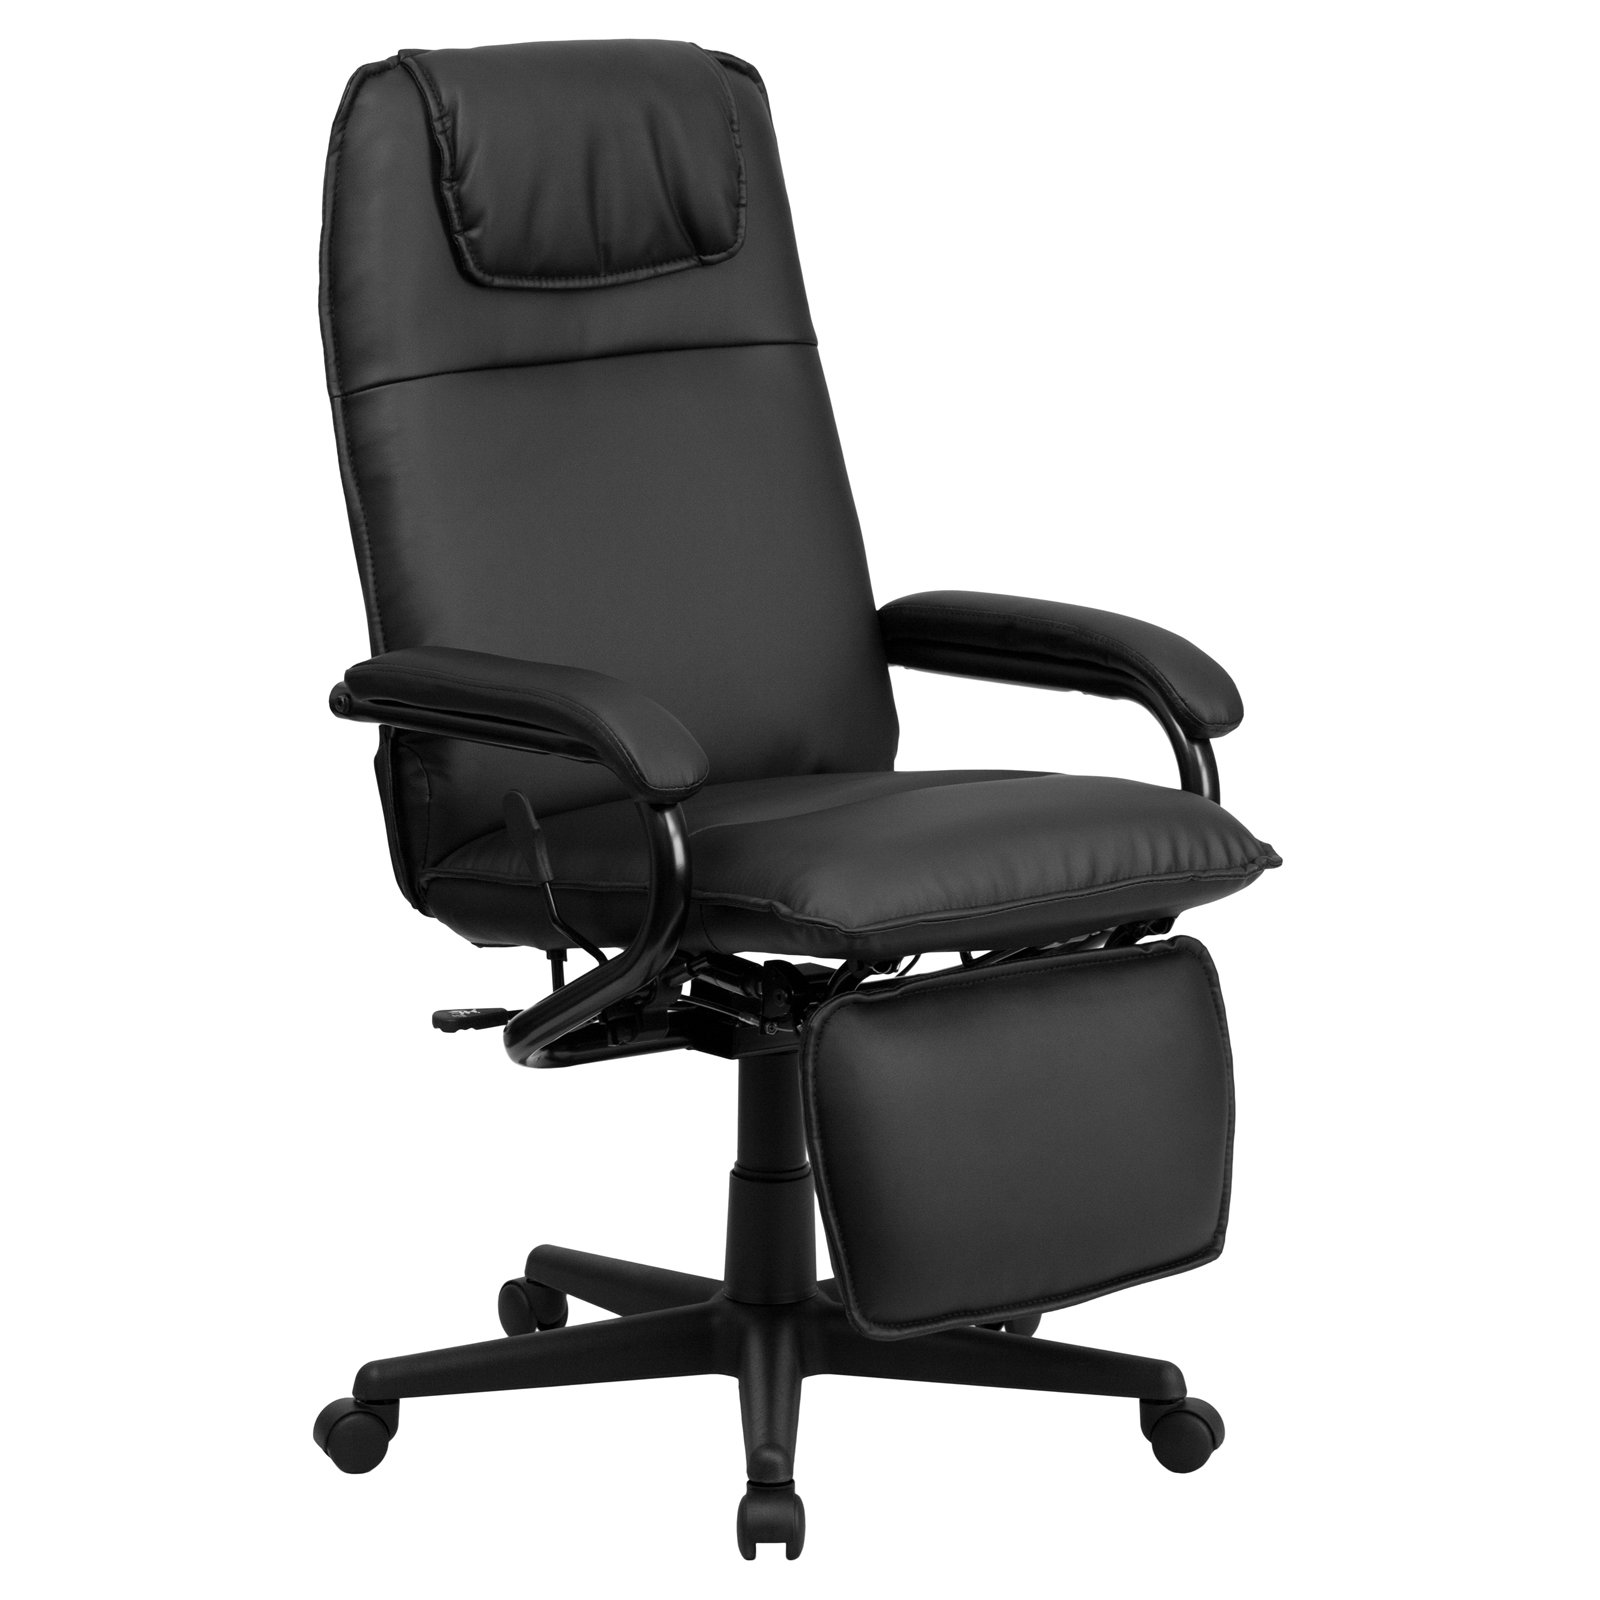 Office Chairs Walmart >> Flash Furniture High Back Leather Executive Reclining Office Chair